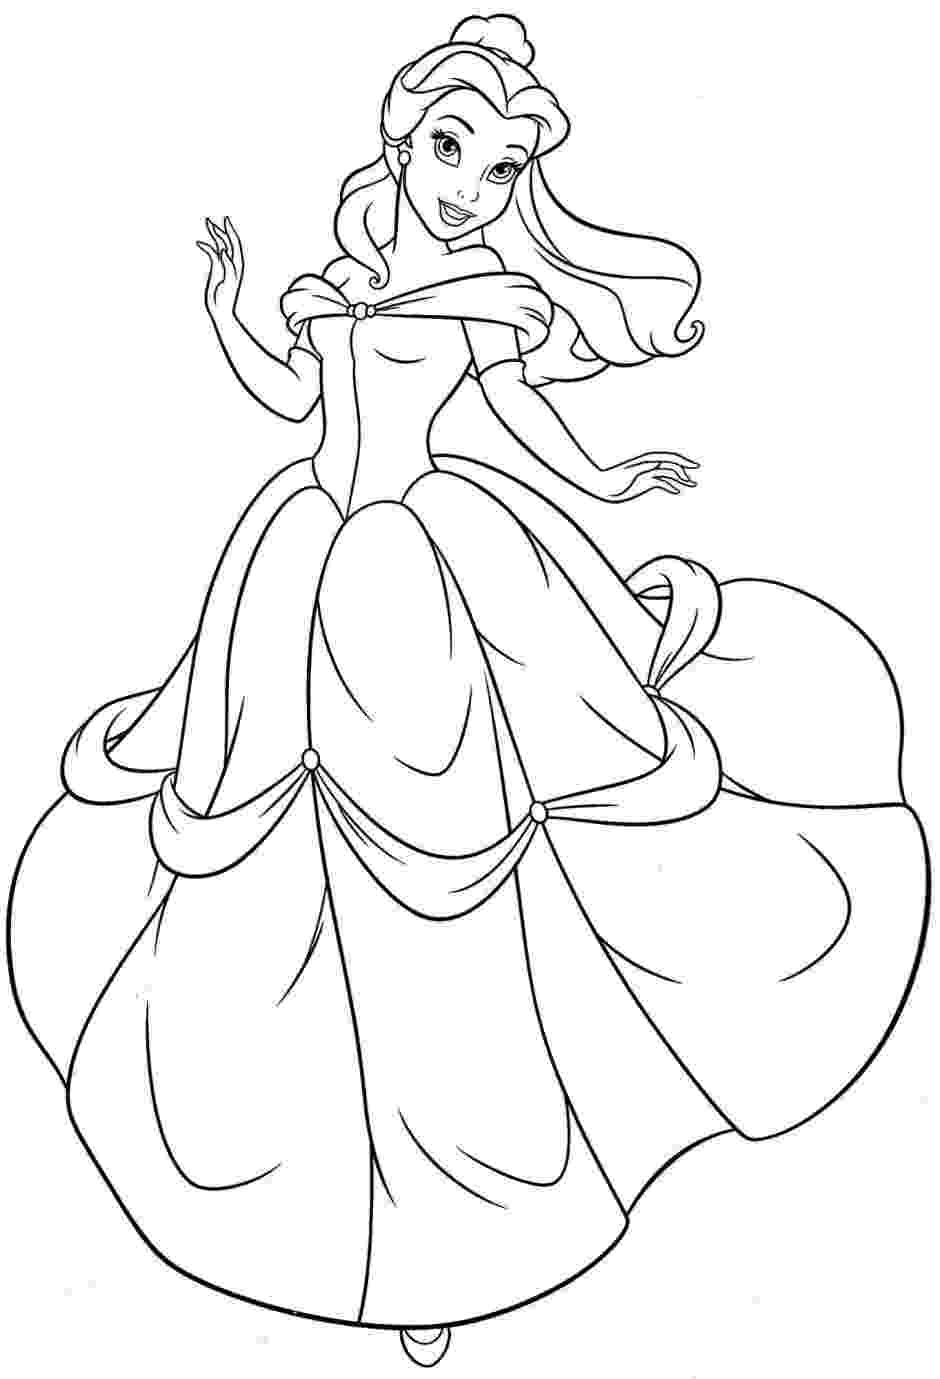 belle pictures to color free printable belle coloring pages for kids belle color to pictures